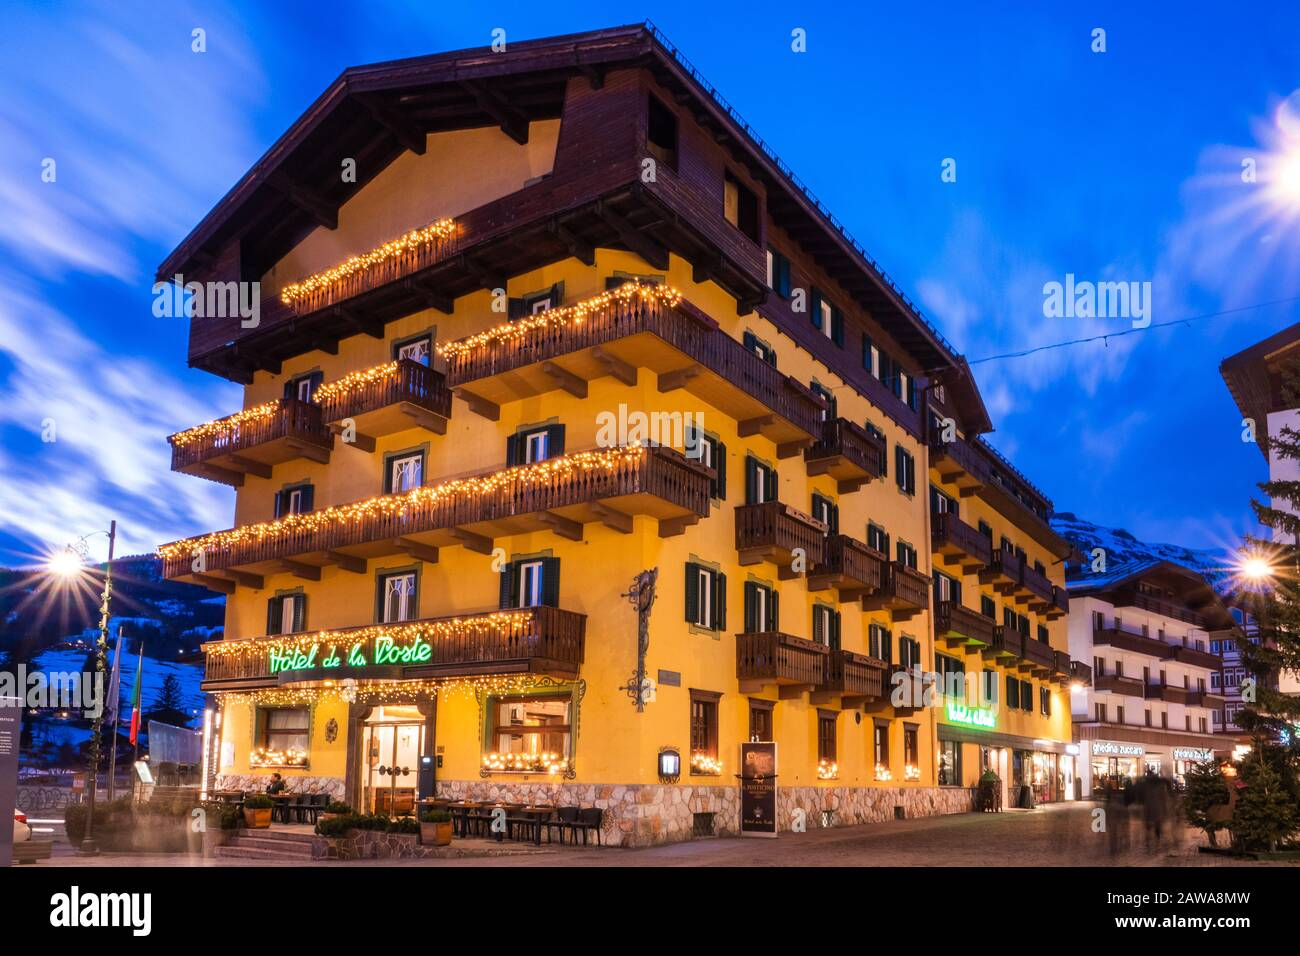 For those interested in checking out popular landmarks while visiting cortina d'ampezzo, de la poste is located a short distance from busto di angelo dibona (0.1 mi) and. Cortina D Ampezzo Italy February 3 2020 Hotel De La Poste In Cortina D Ampezzo Italy On A Winter Evening A Famous Hotel And Restaurant On The Co Stock Photo Alamy